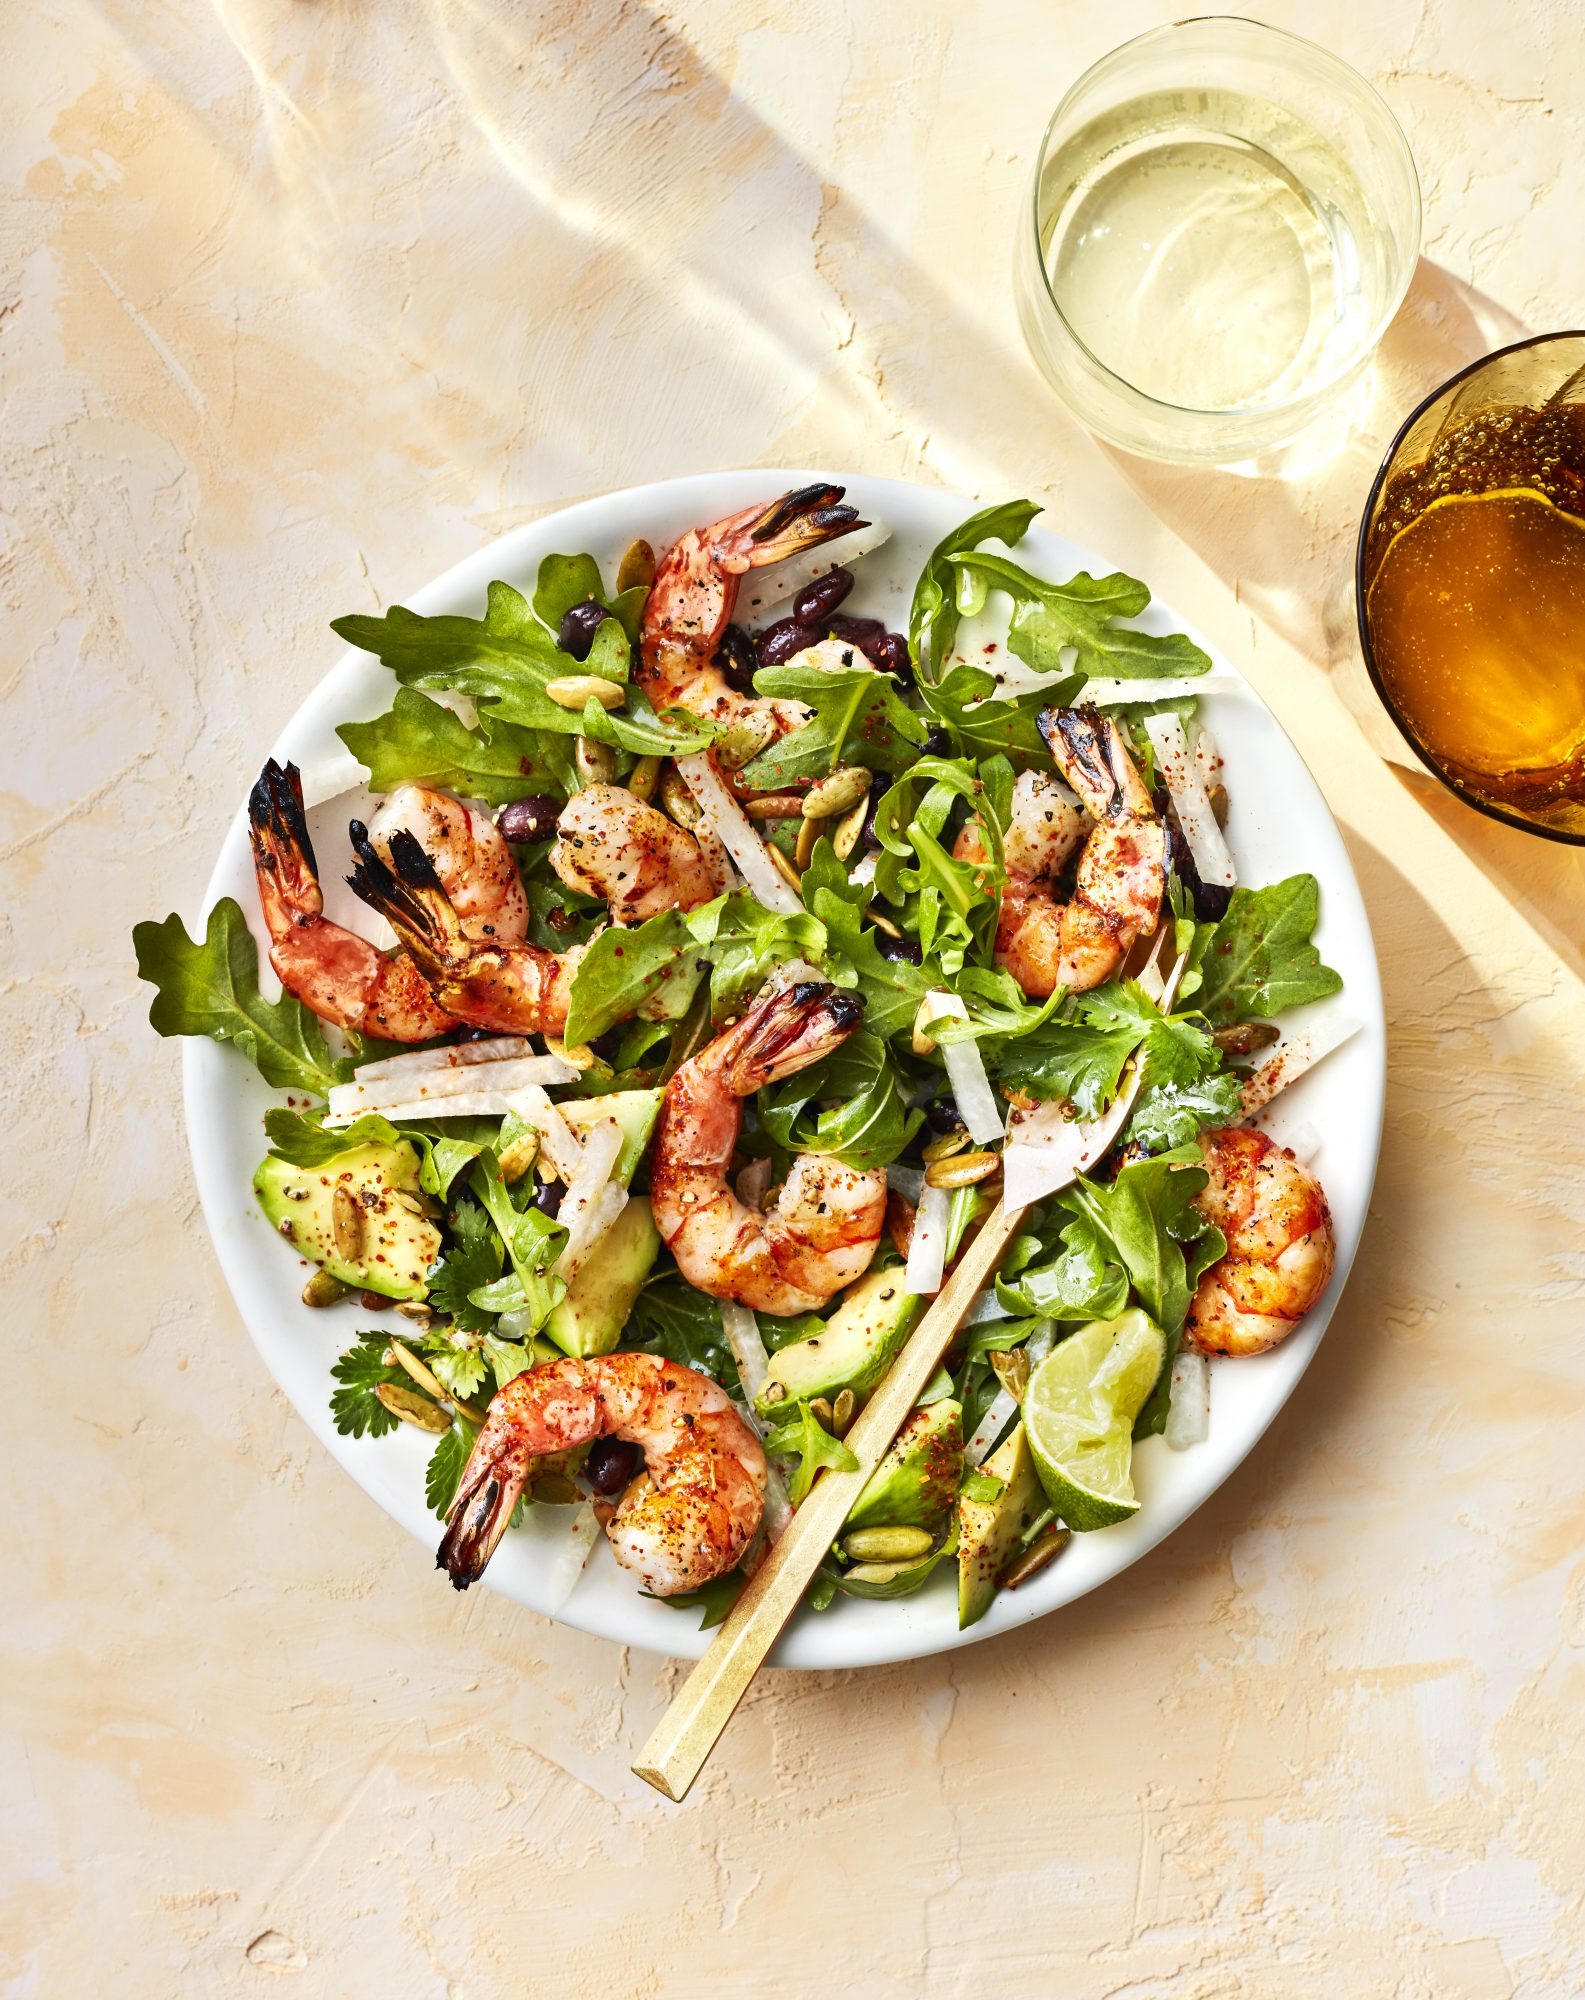 Grilled Shrimp with Black Beans, Jicama,and Avocado